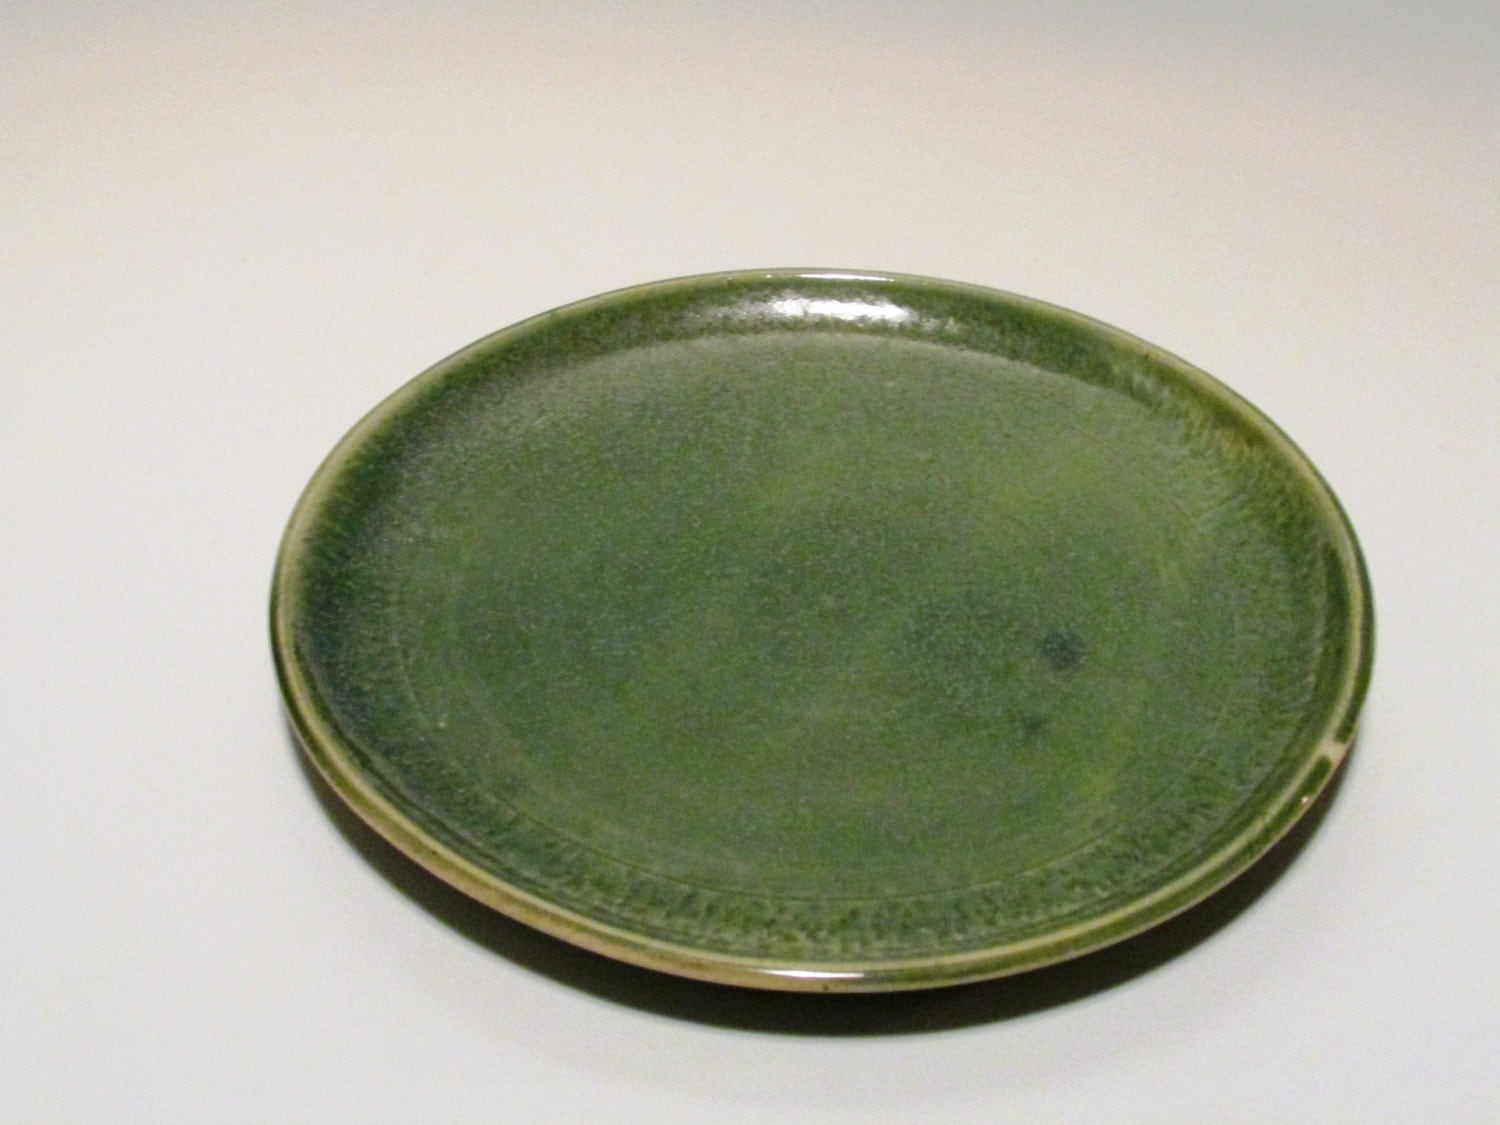 ceramic dinner plate serving plate stoneware plate